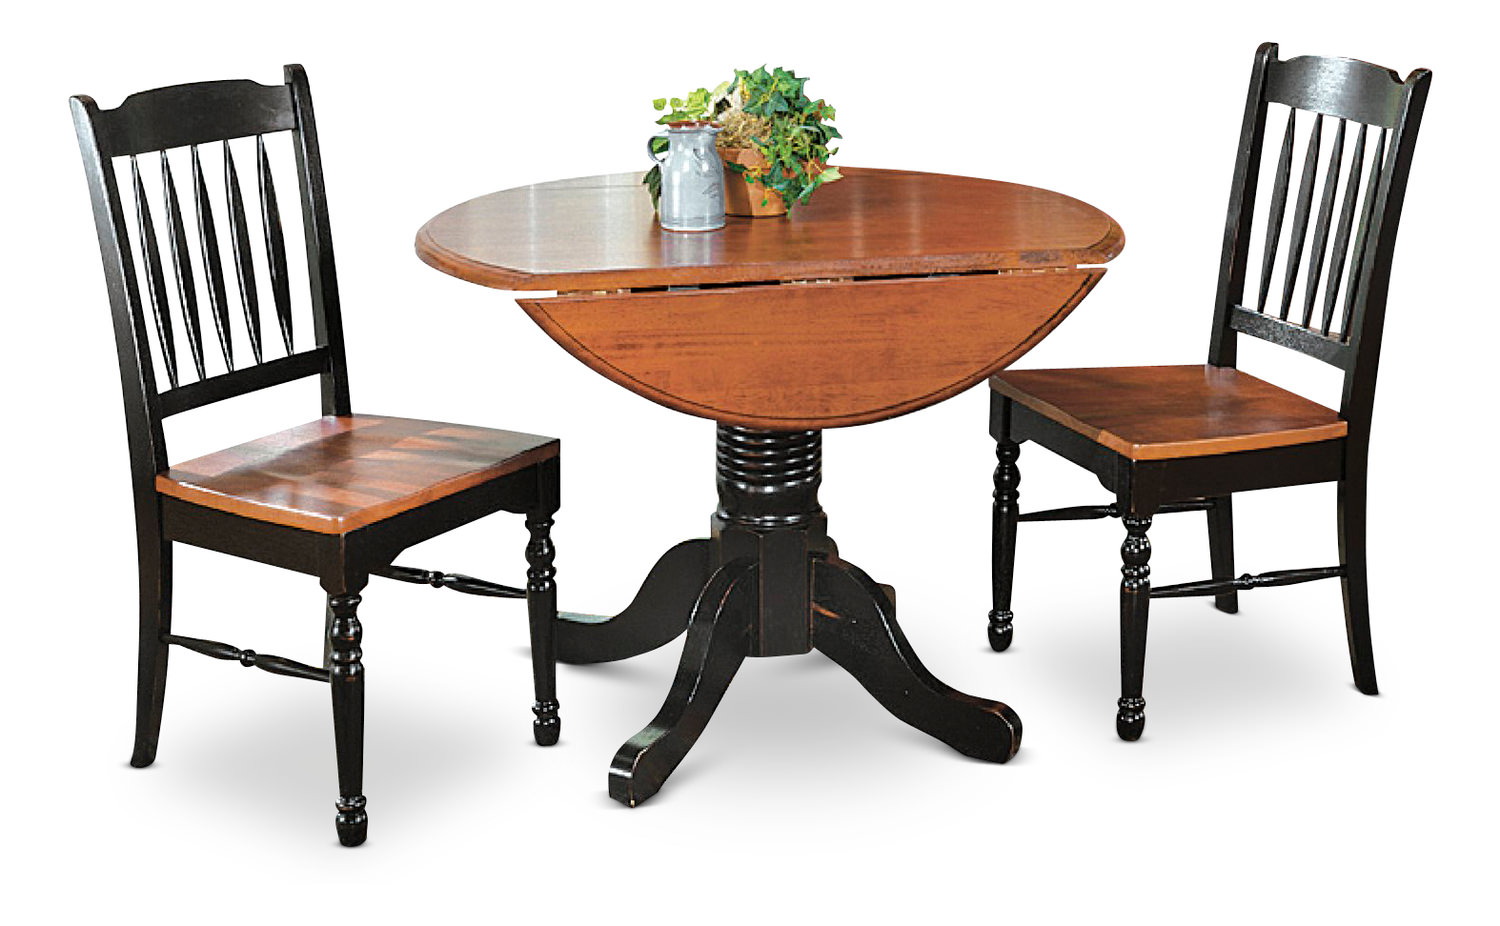 British Isles Drop Leaf Dining Set By Thomas Hom Furniture